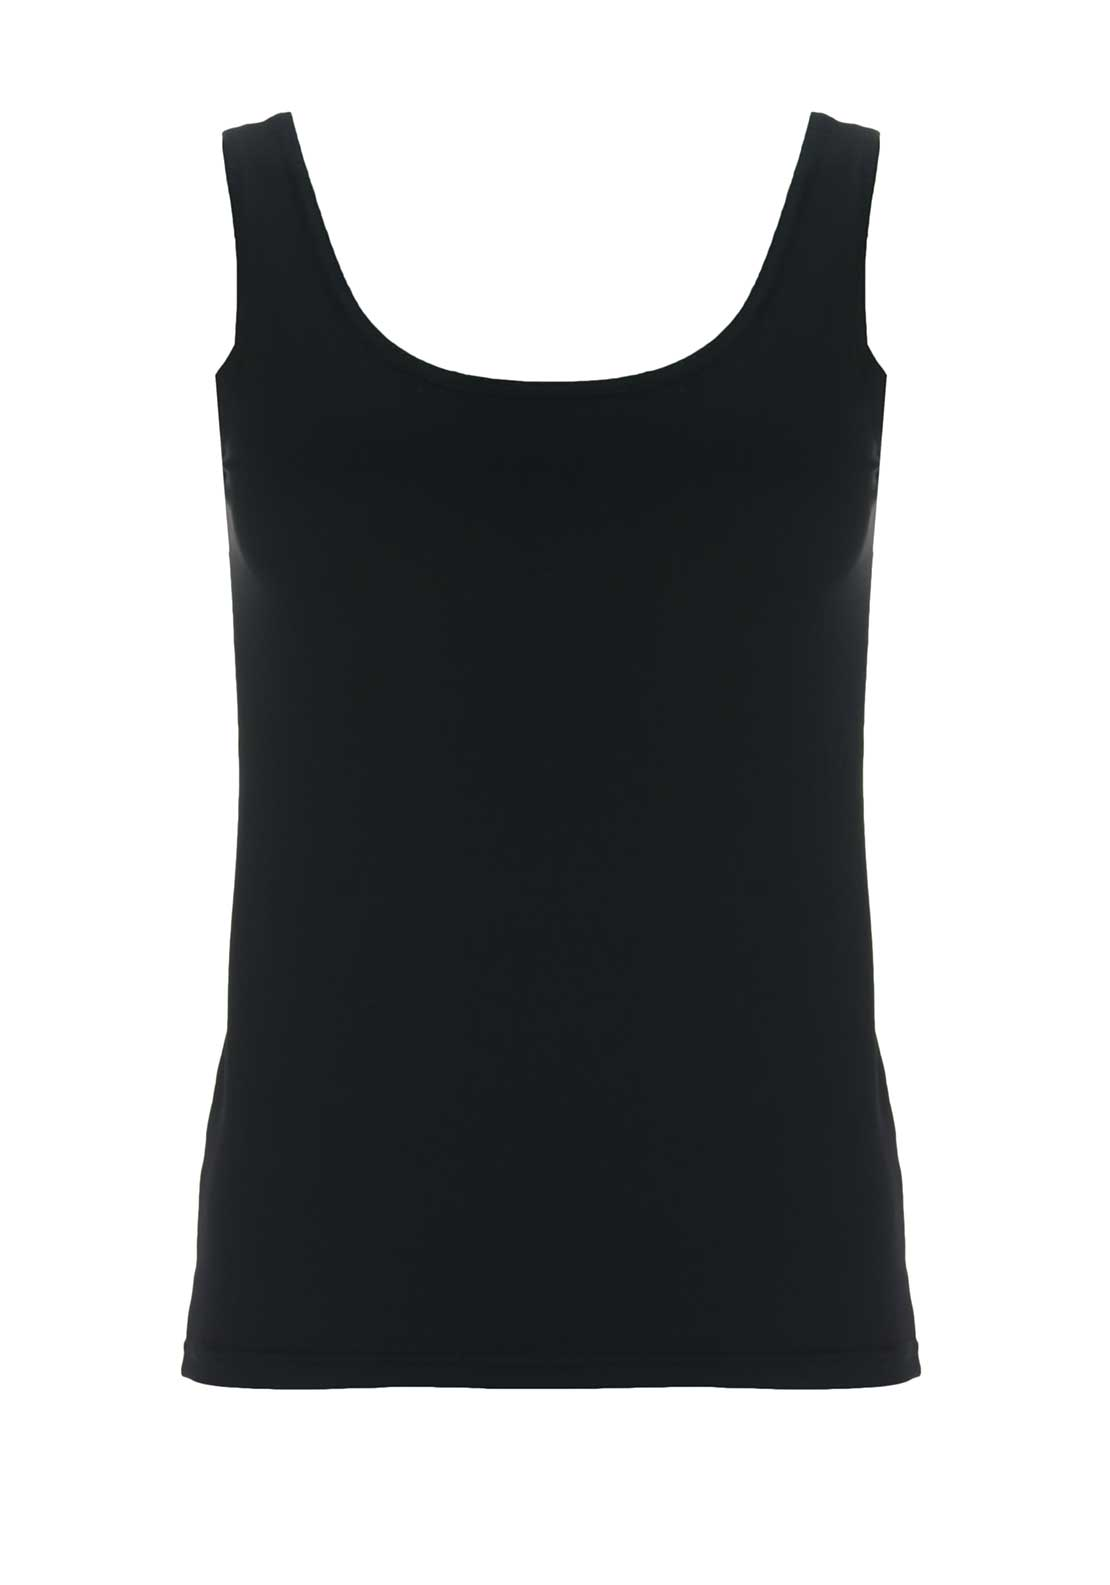 d.e.c.k. by Decollage Pia Vest Top, Black